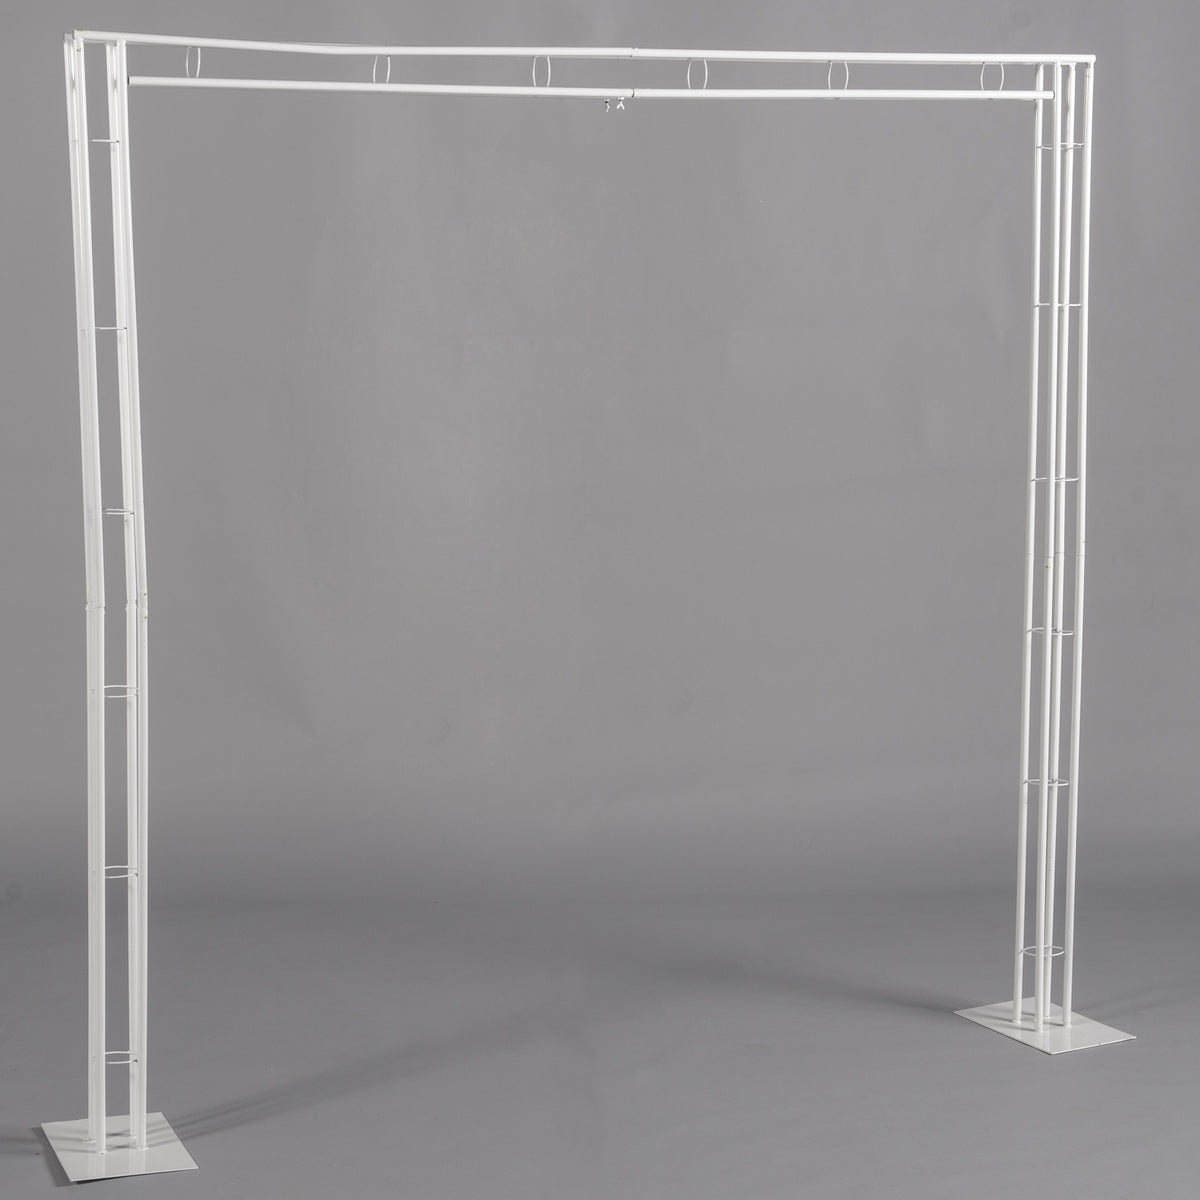 7 ft. Reusable Wire Arch for Fabric